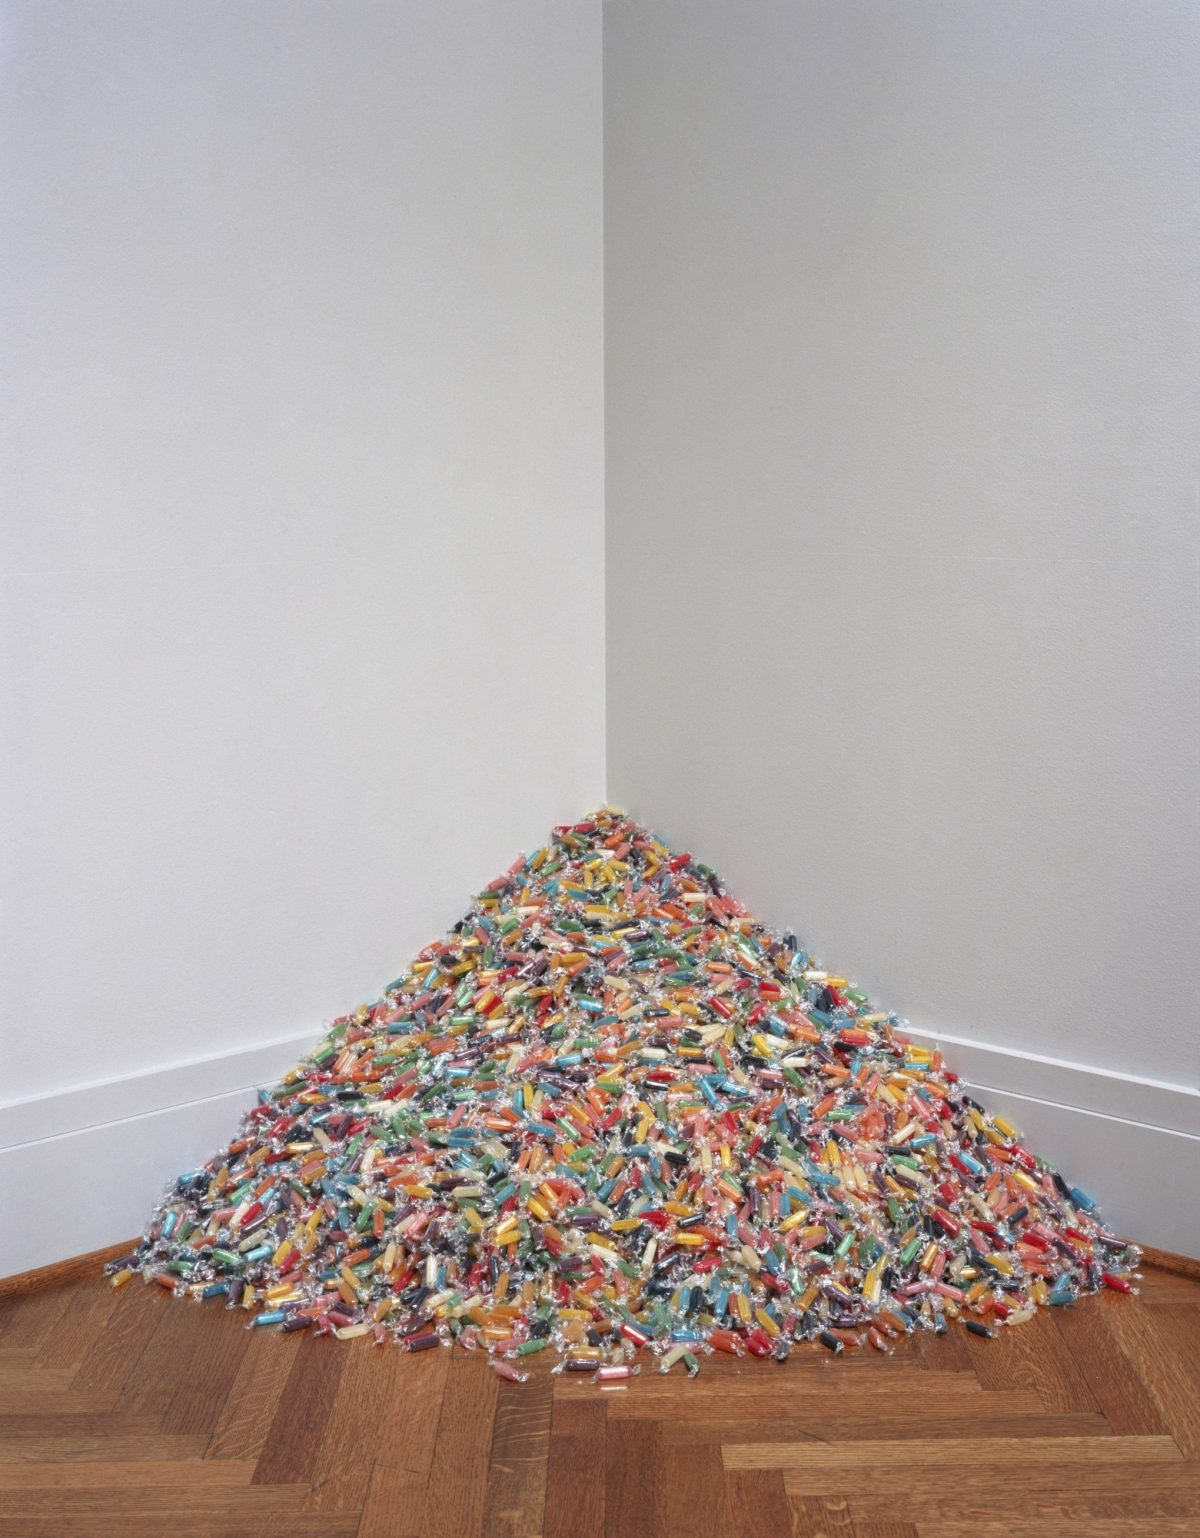 Damien Hirst And Felix Gonzalez Torres Candy 2013 Courtesy The Artists And Blain Southern 5